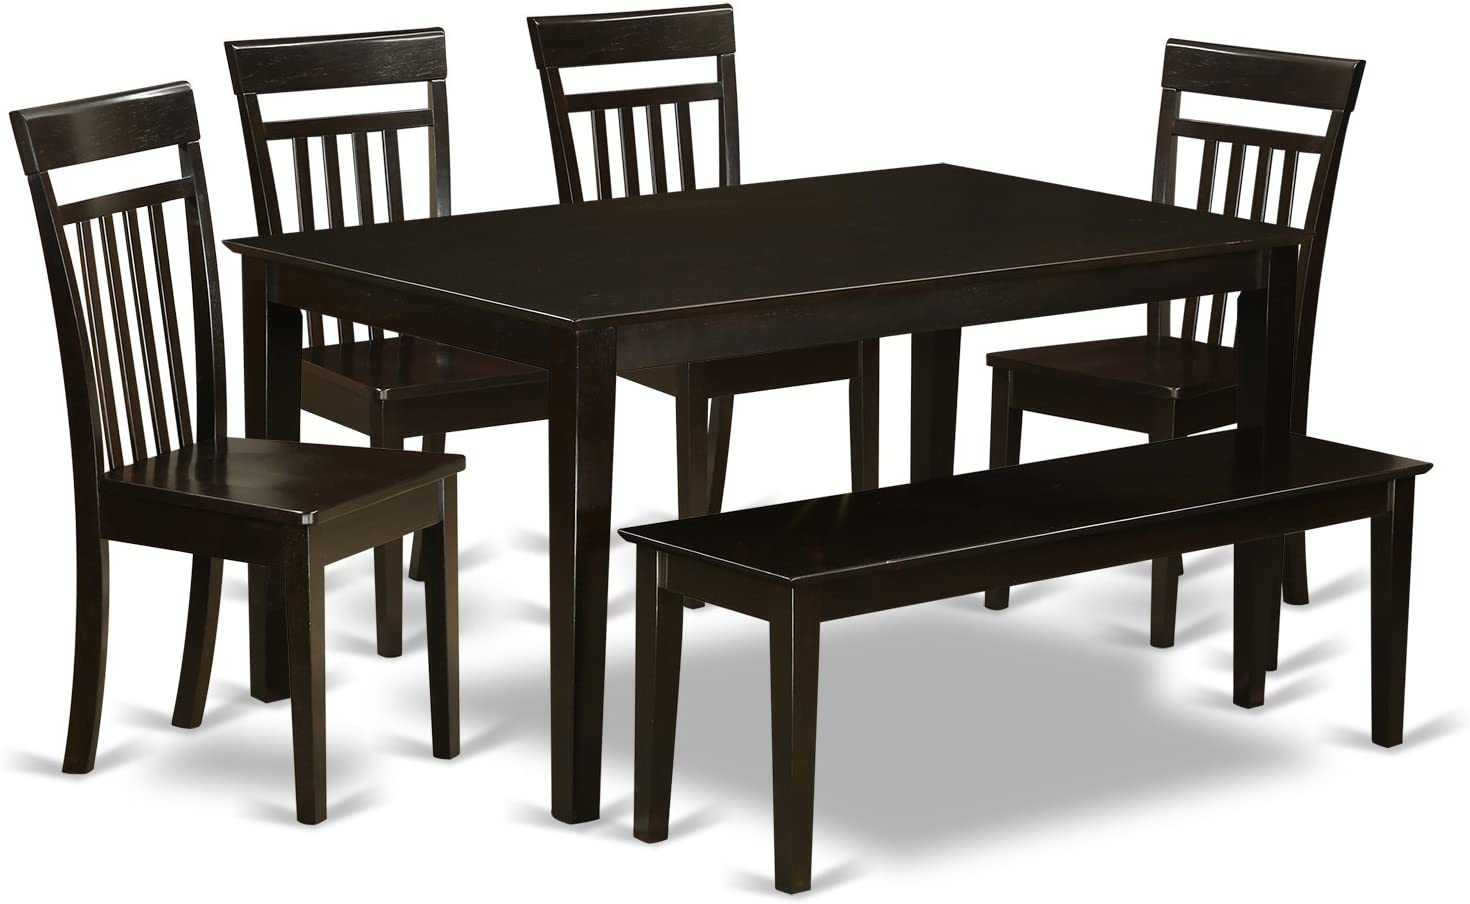 CAP6S-CAP-W 6 PC Kitchen Table with bench set-Kitchen Table and 4 Chairs for Kitchen and 1 Bench